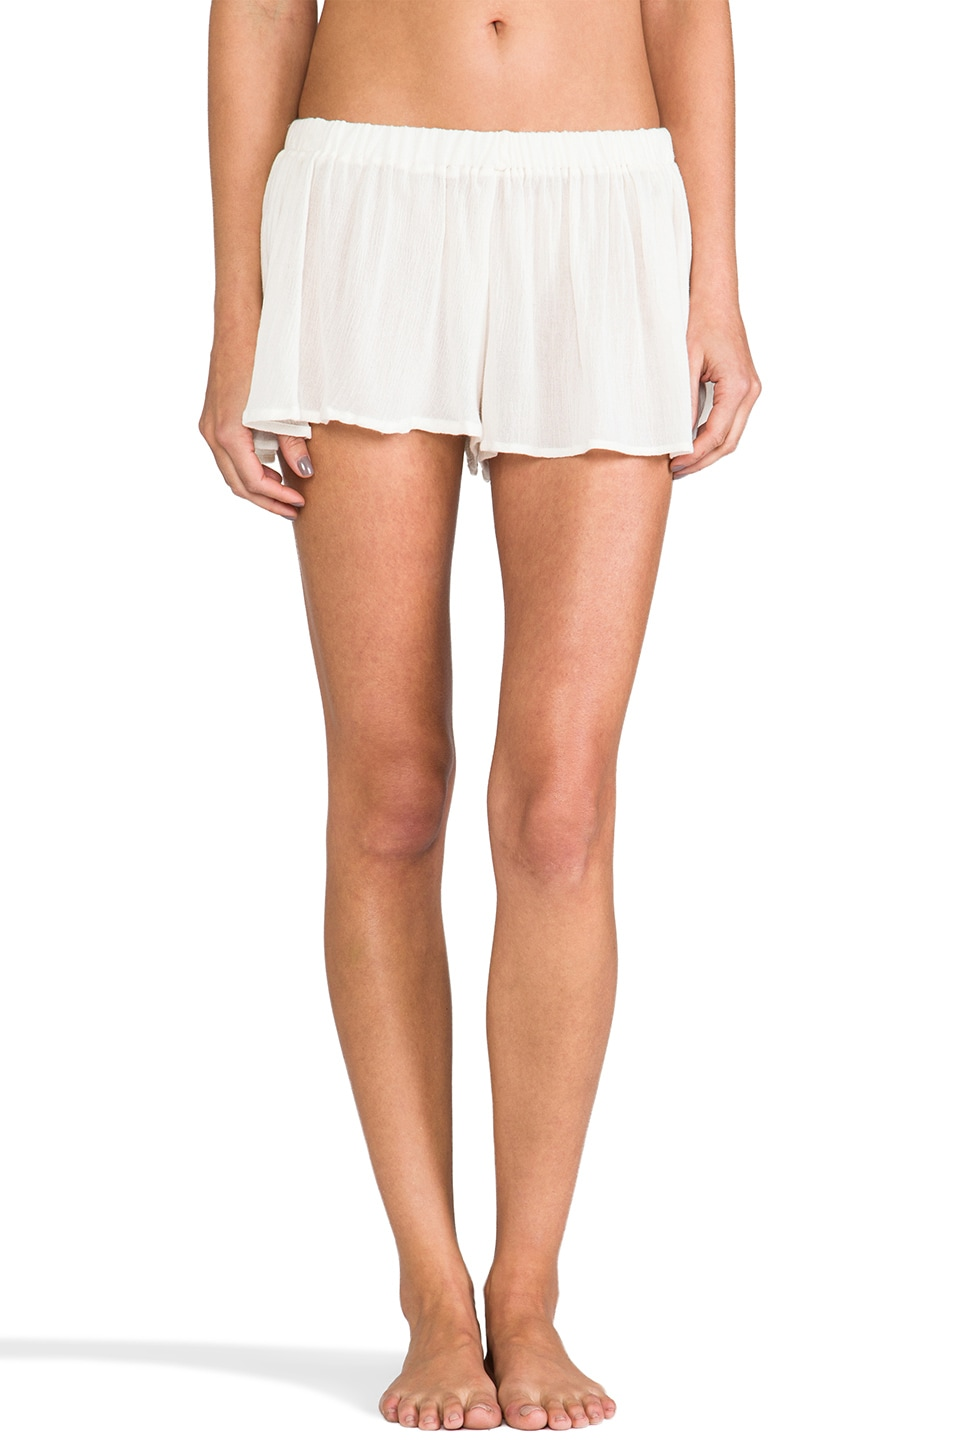 eberjey Laurel Shorts in Cloud